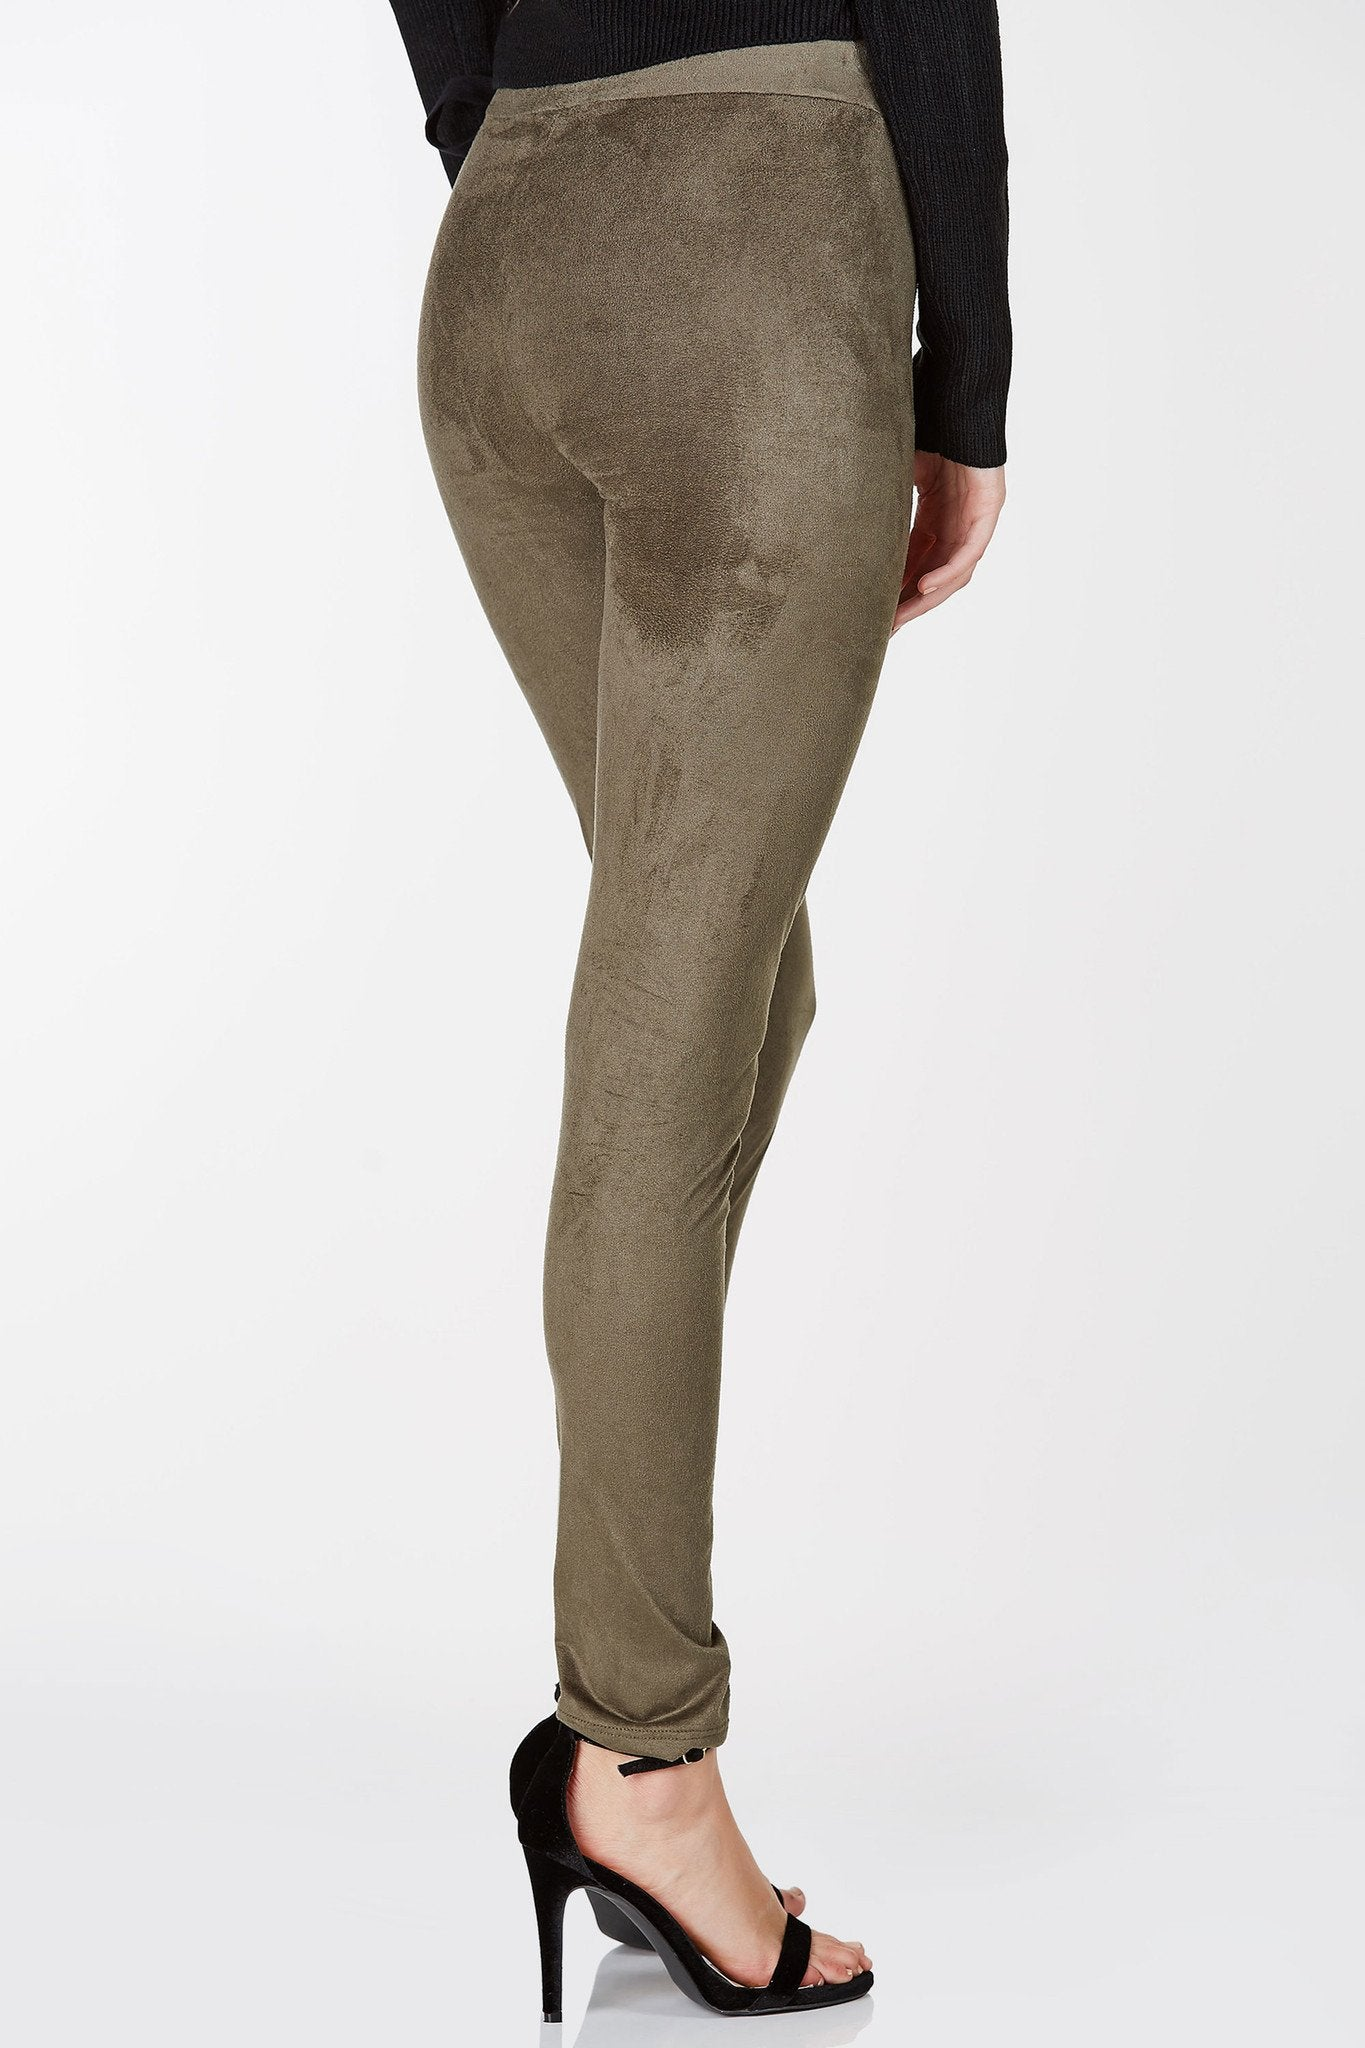 High rise basic leggings with suede finish. Slim fit with elastic waistband for comfort.